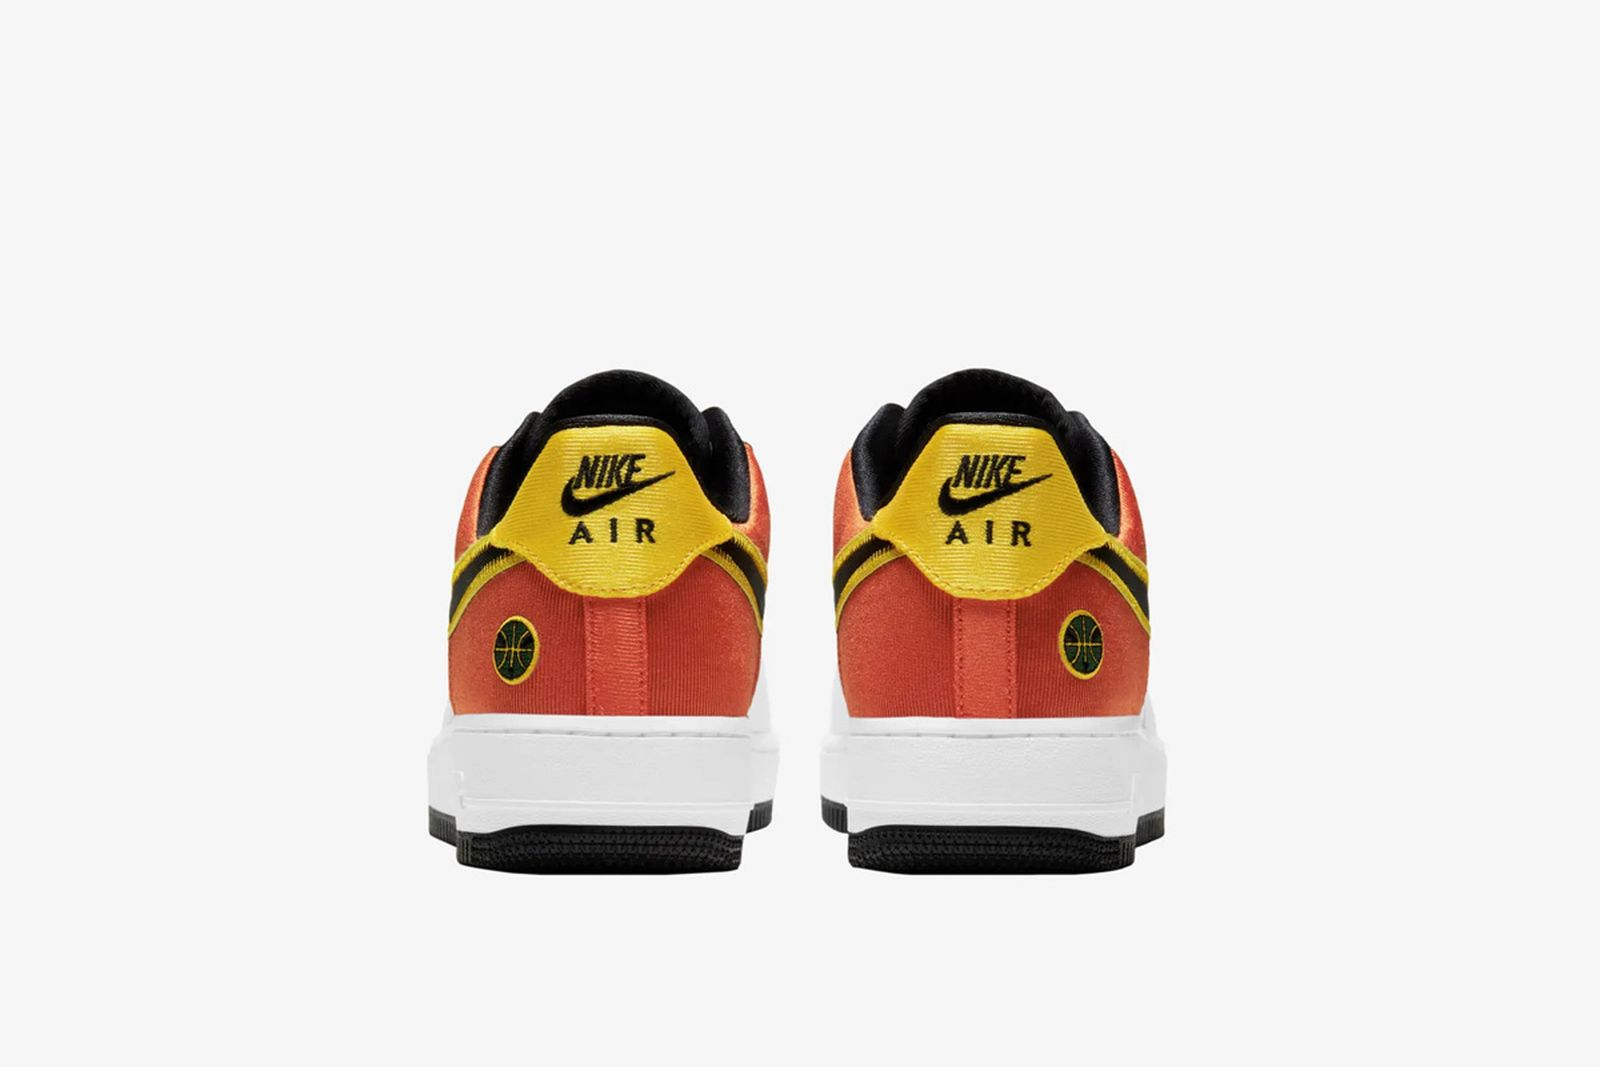 nike-air-force-1-rayguns-release-date-price-08